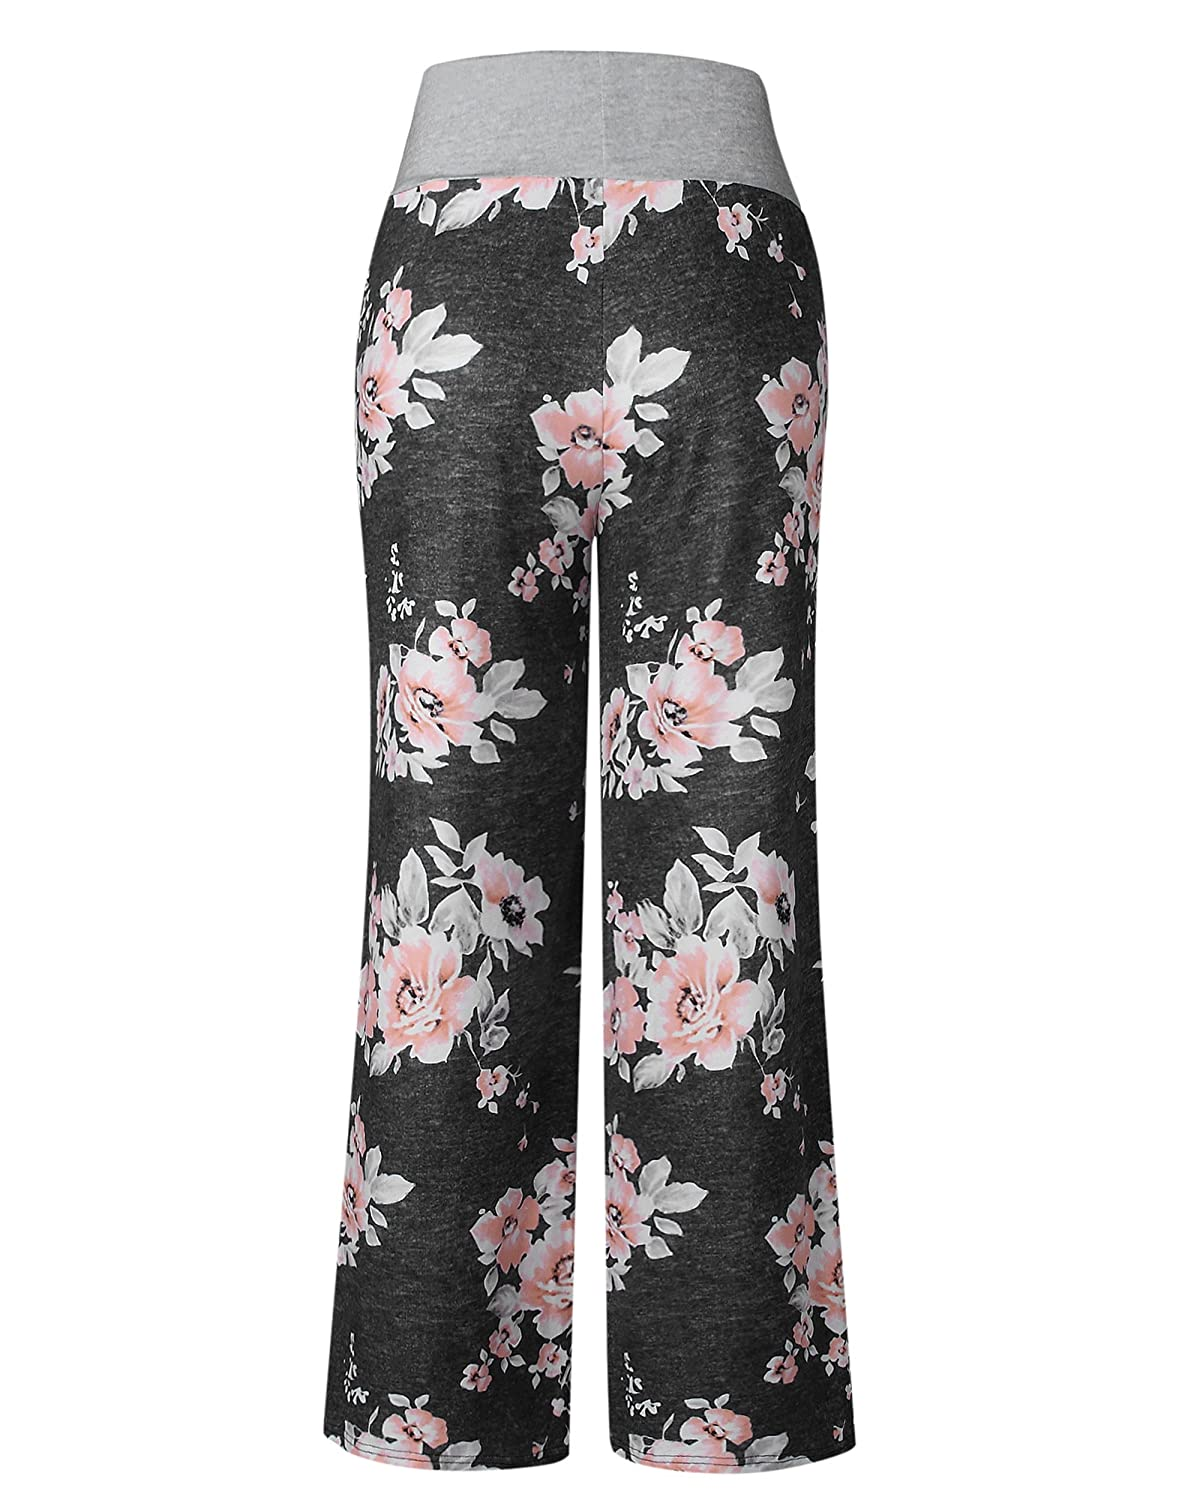 97e6f81585 AceIce Women s Comfy Stretch Floral Print Lounge Pants Casual Drawstring  Palazzo Pants Wide Leg Pajama Pants at Amazon Women s Clothing store